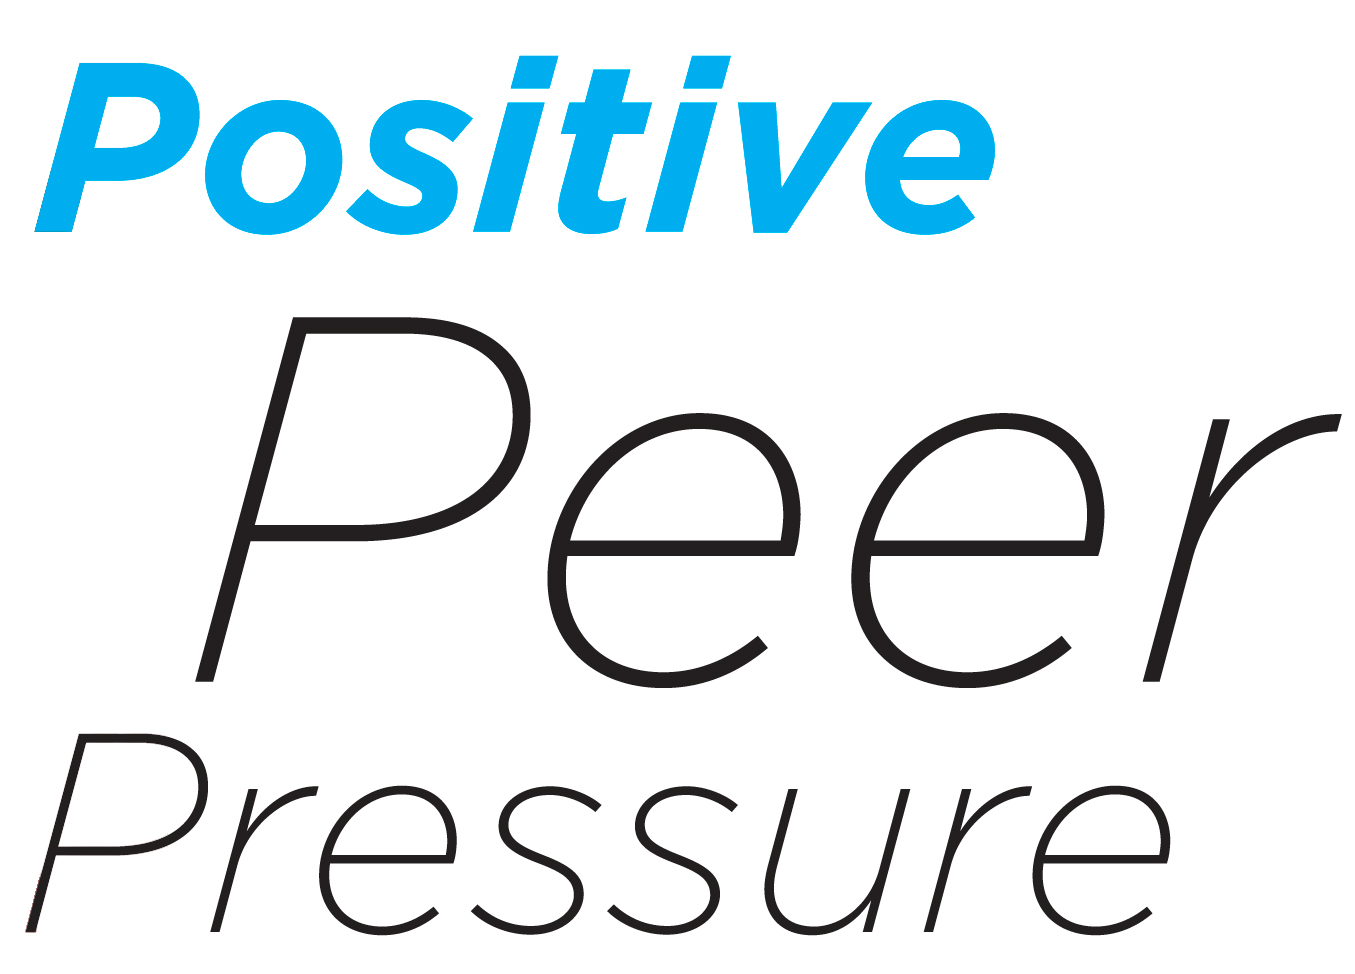 Quotes about Positive peer pressure (13 quotes)